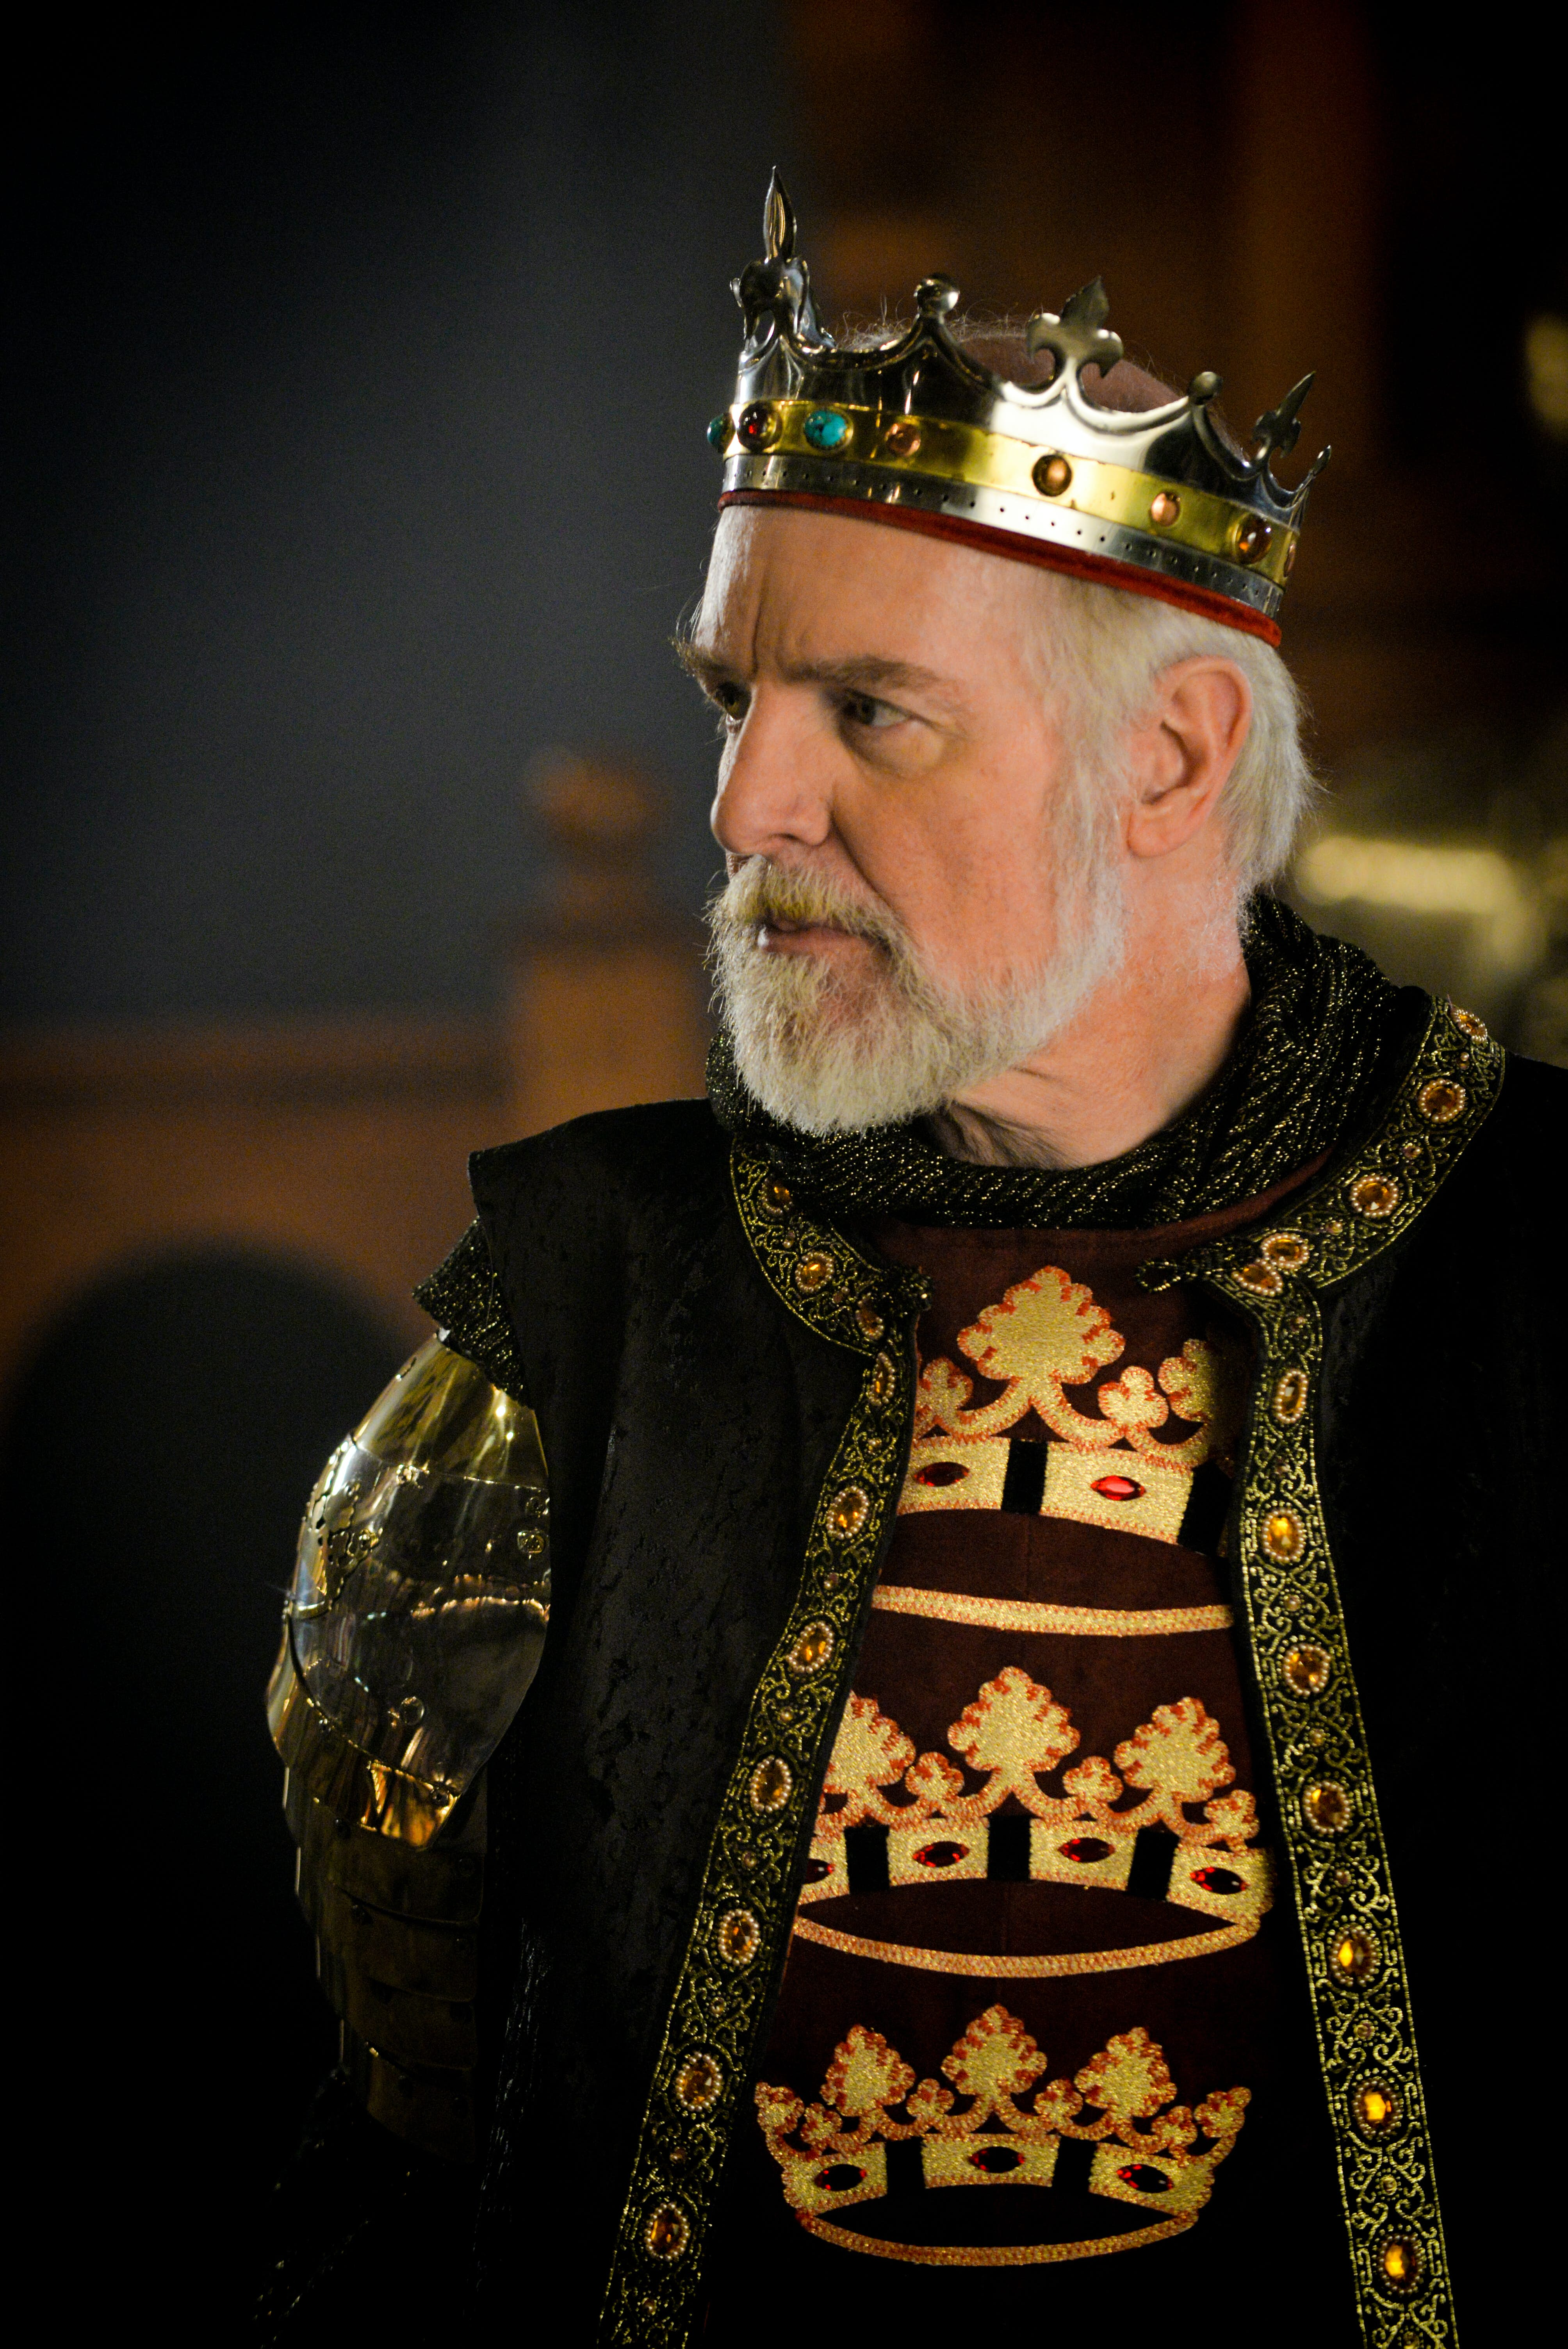 Photo of King wearing his crown with jewels, and displaying his wealth by wearing dark green velvets imported from italy.